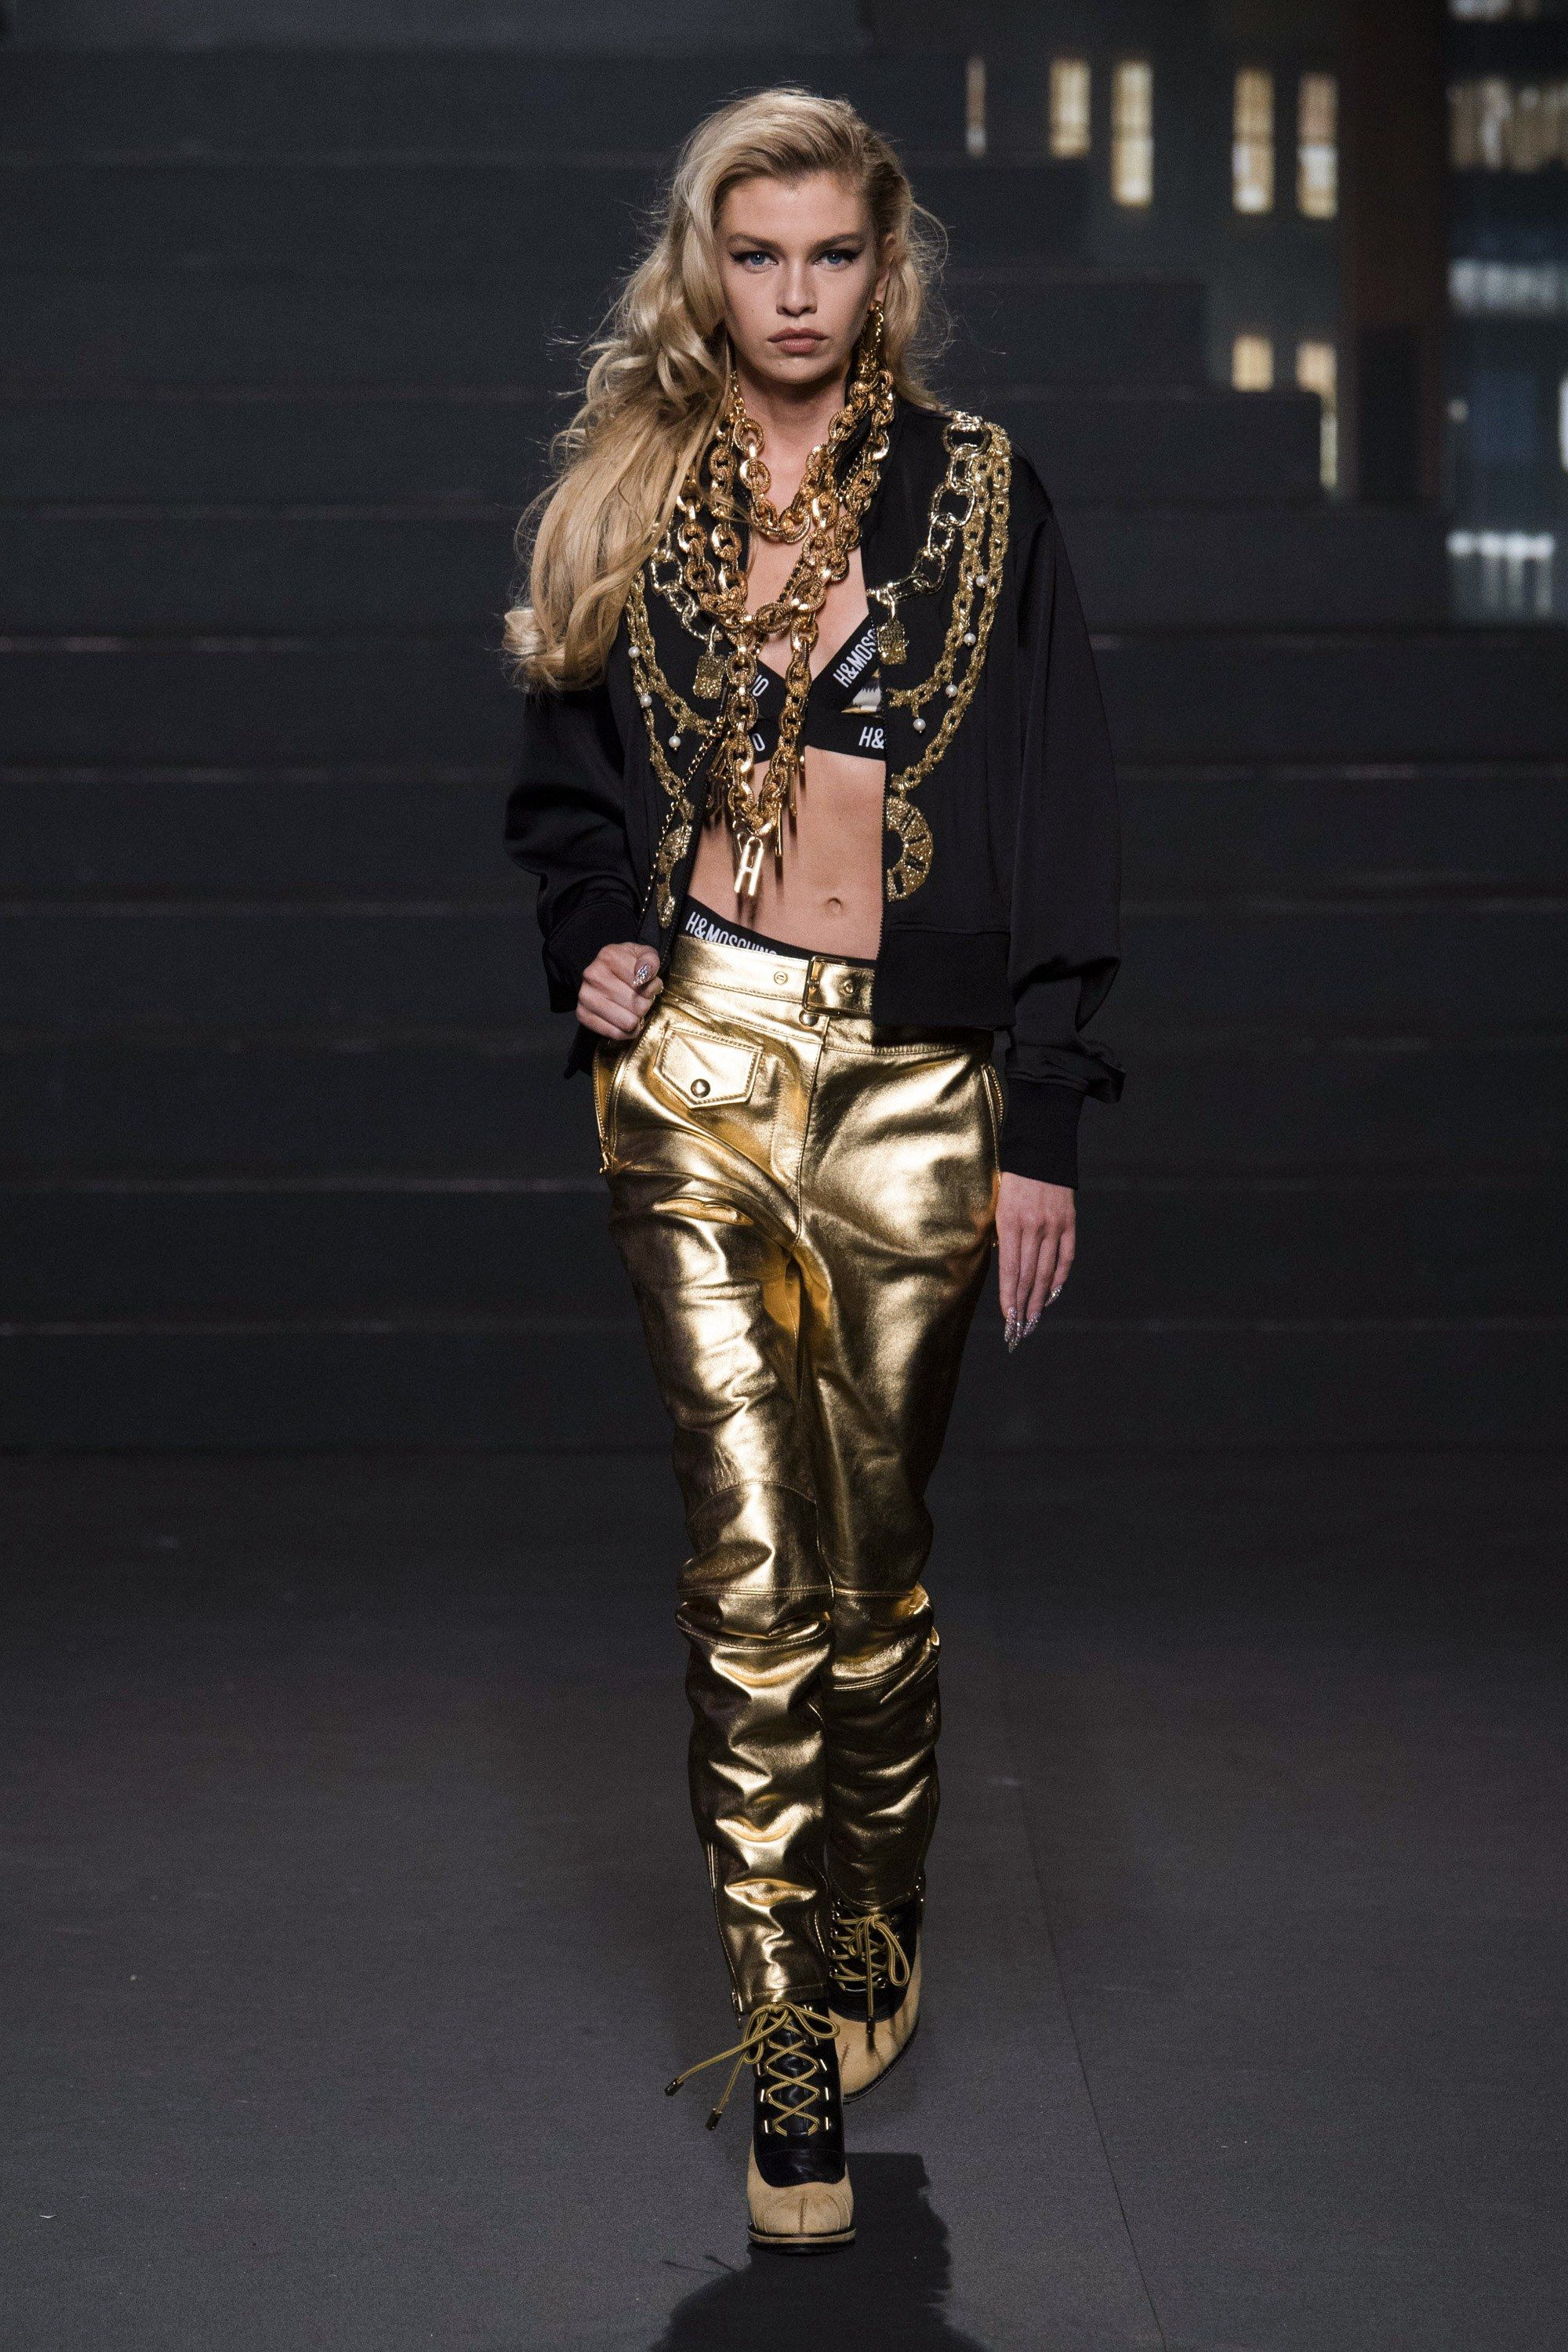 H M x Moschino Spring 2019 Ready-to-Wear Fashion Show in 2019 ... 0f39e554581